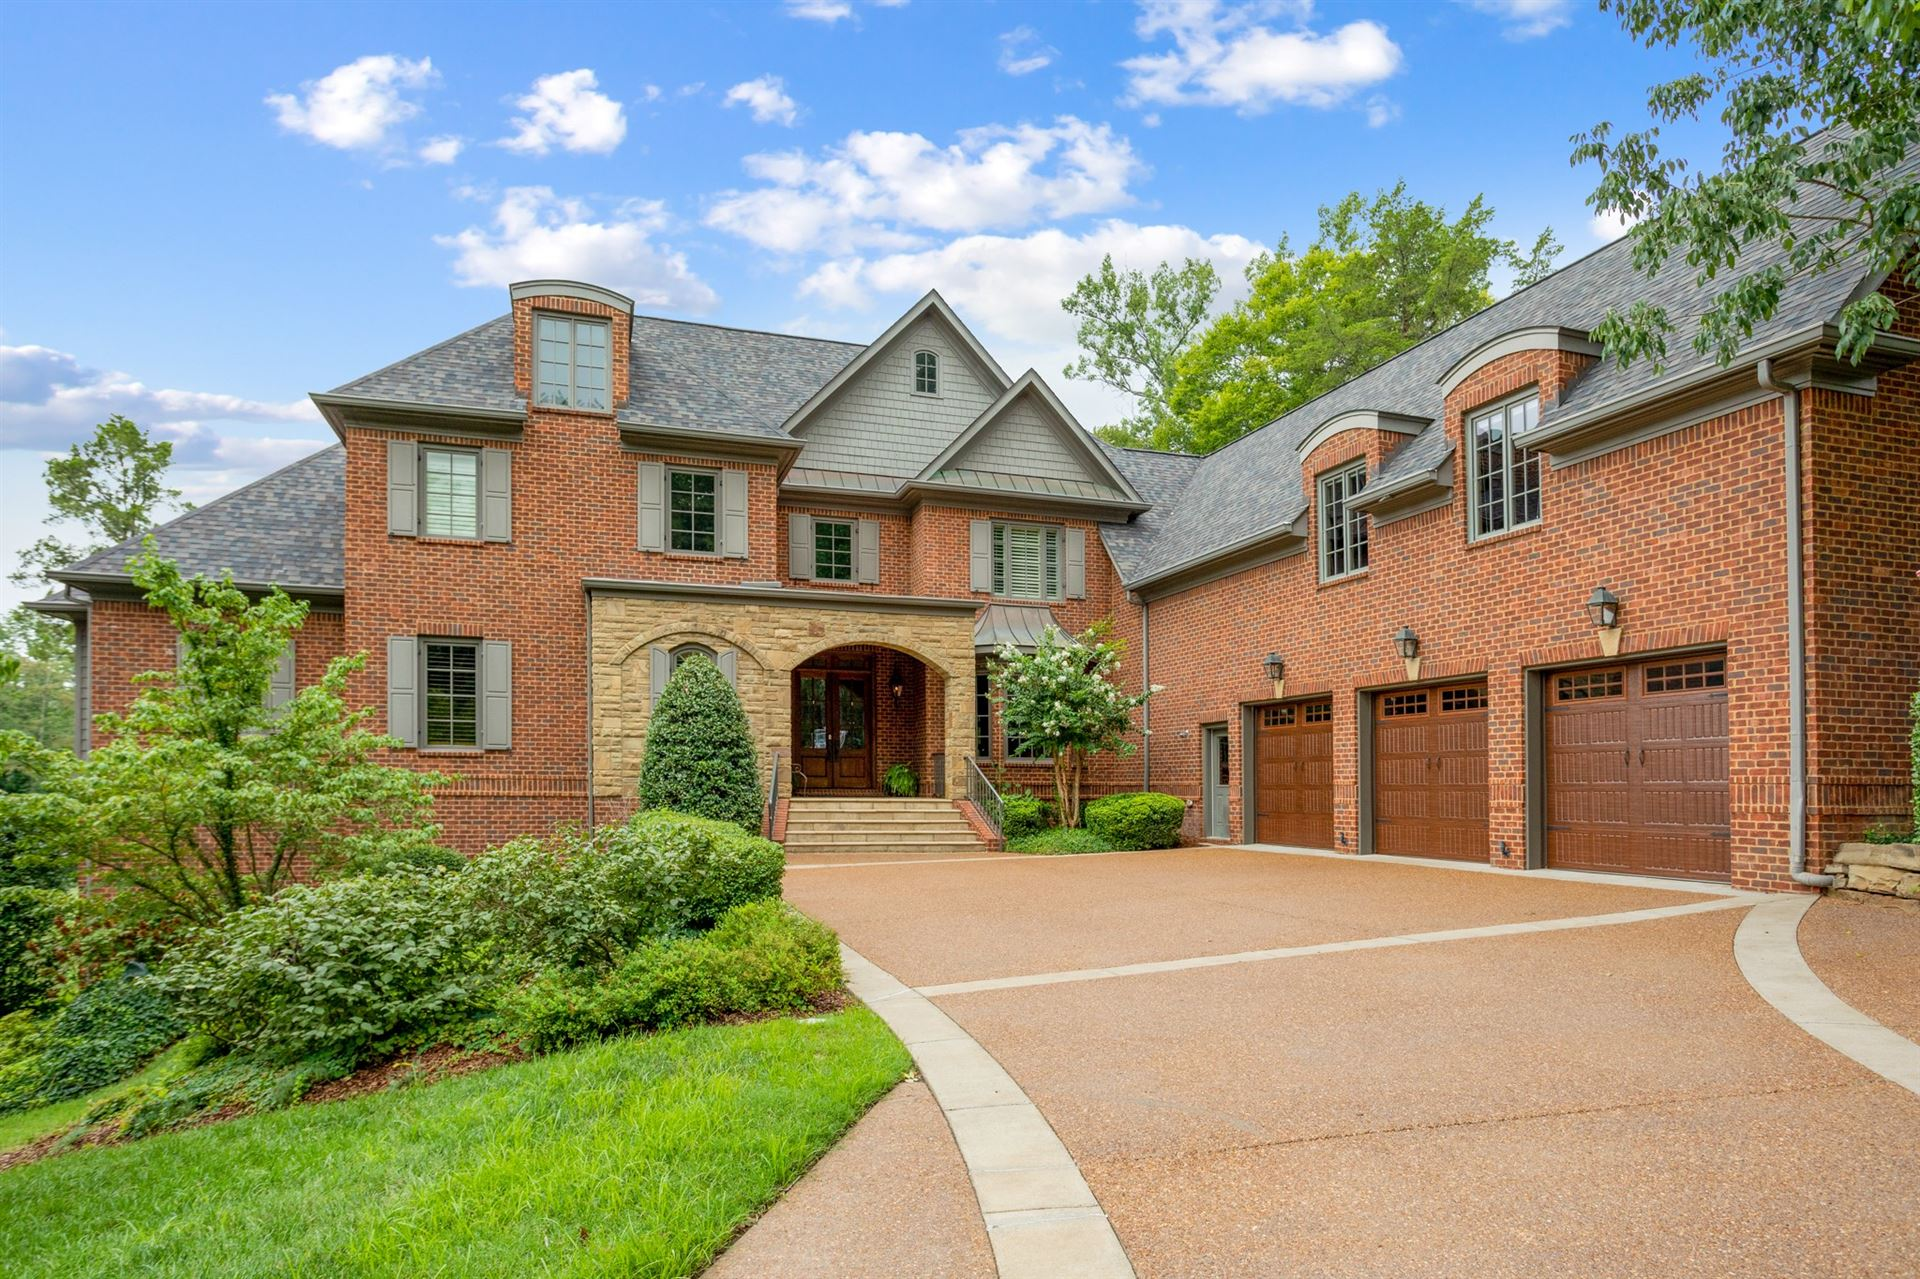 Photo of 10 Camel Back Ct, Brentwood, TN 37027 (MLS # 2218098)